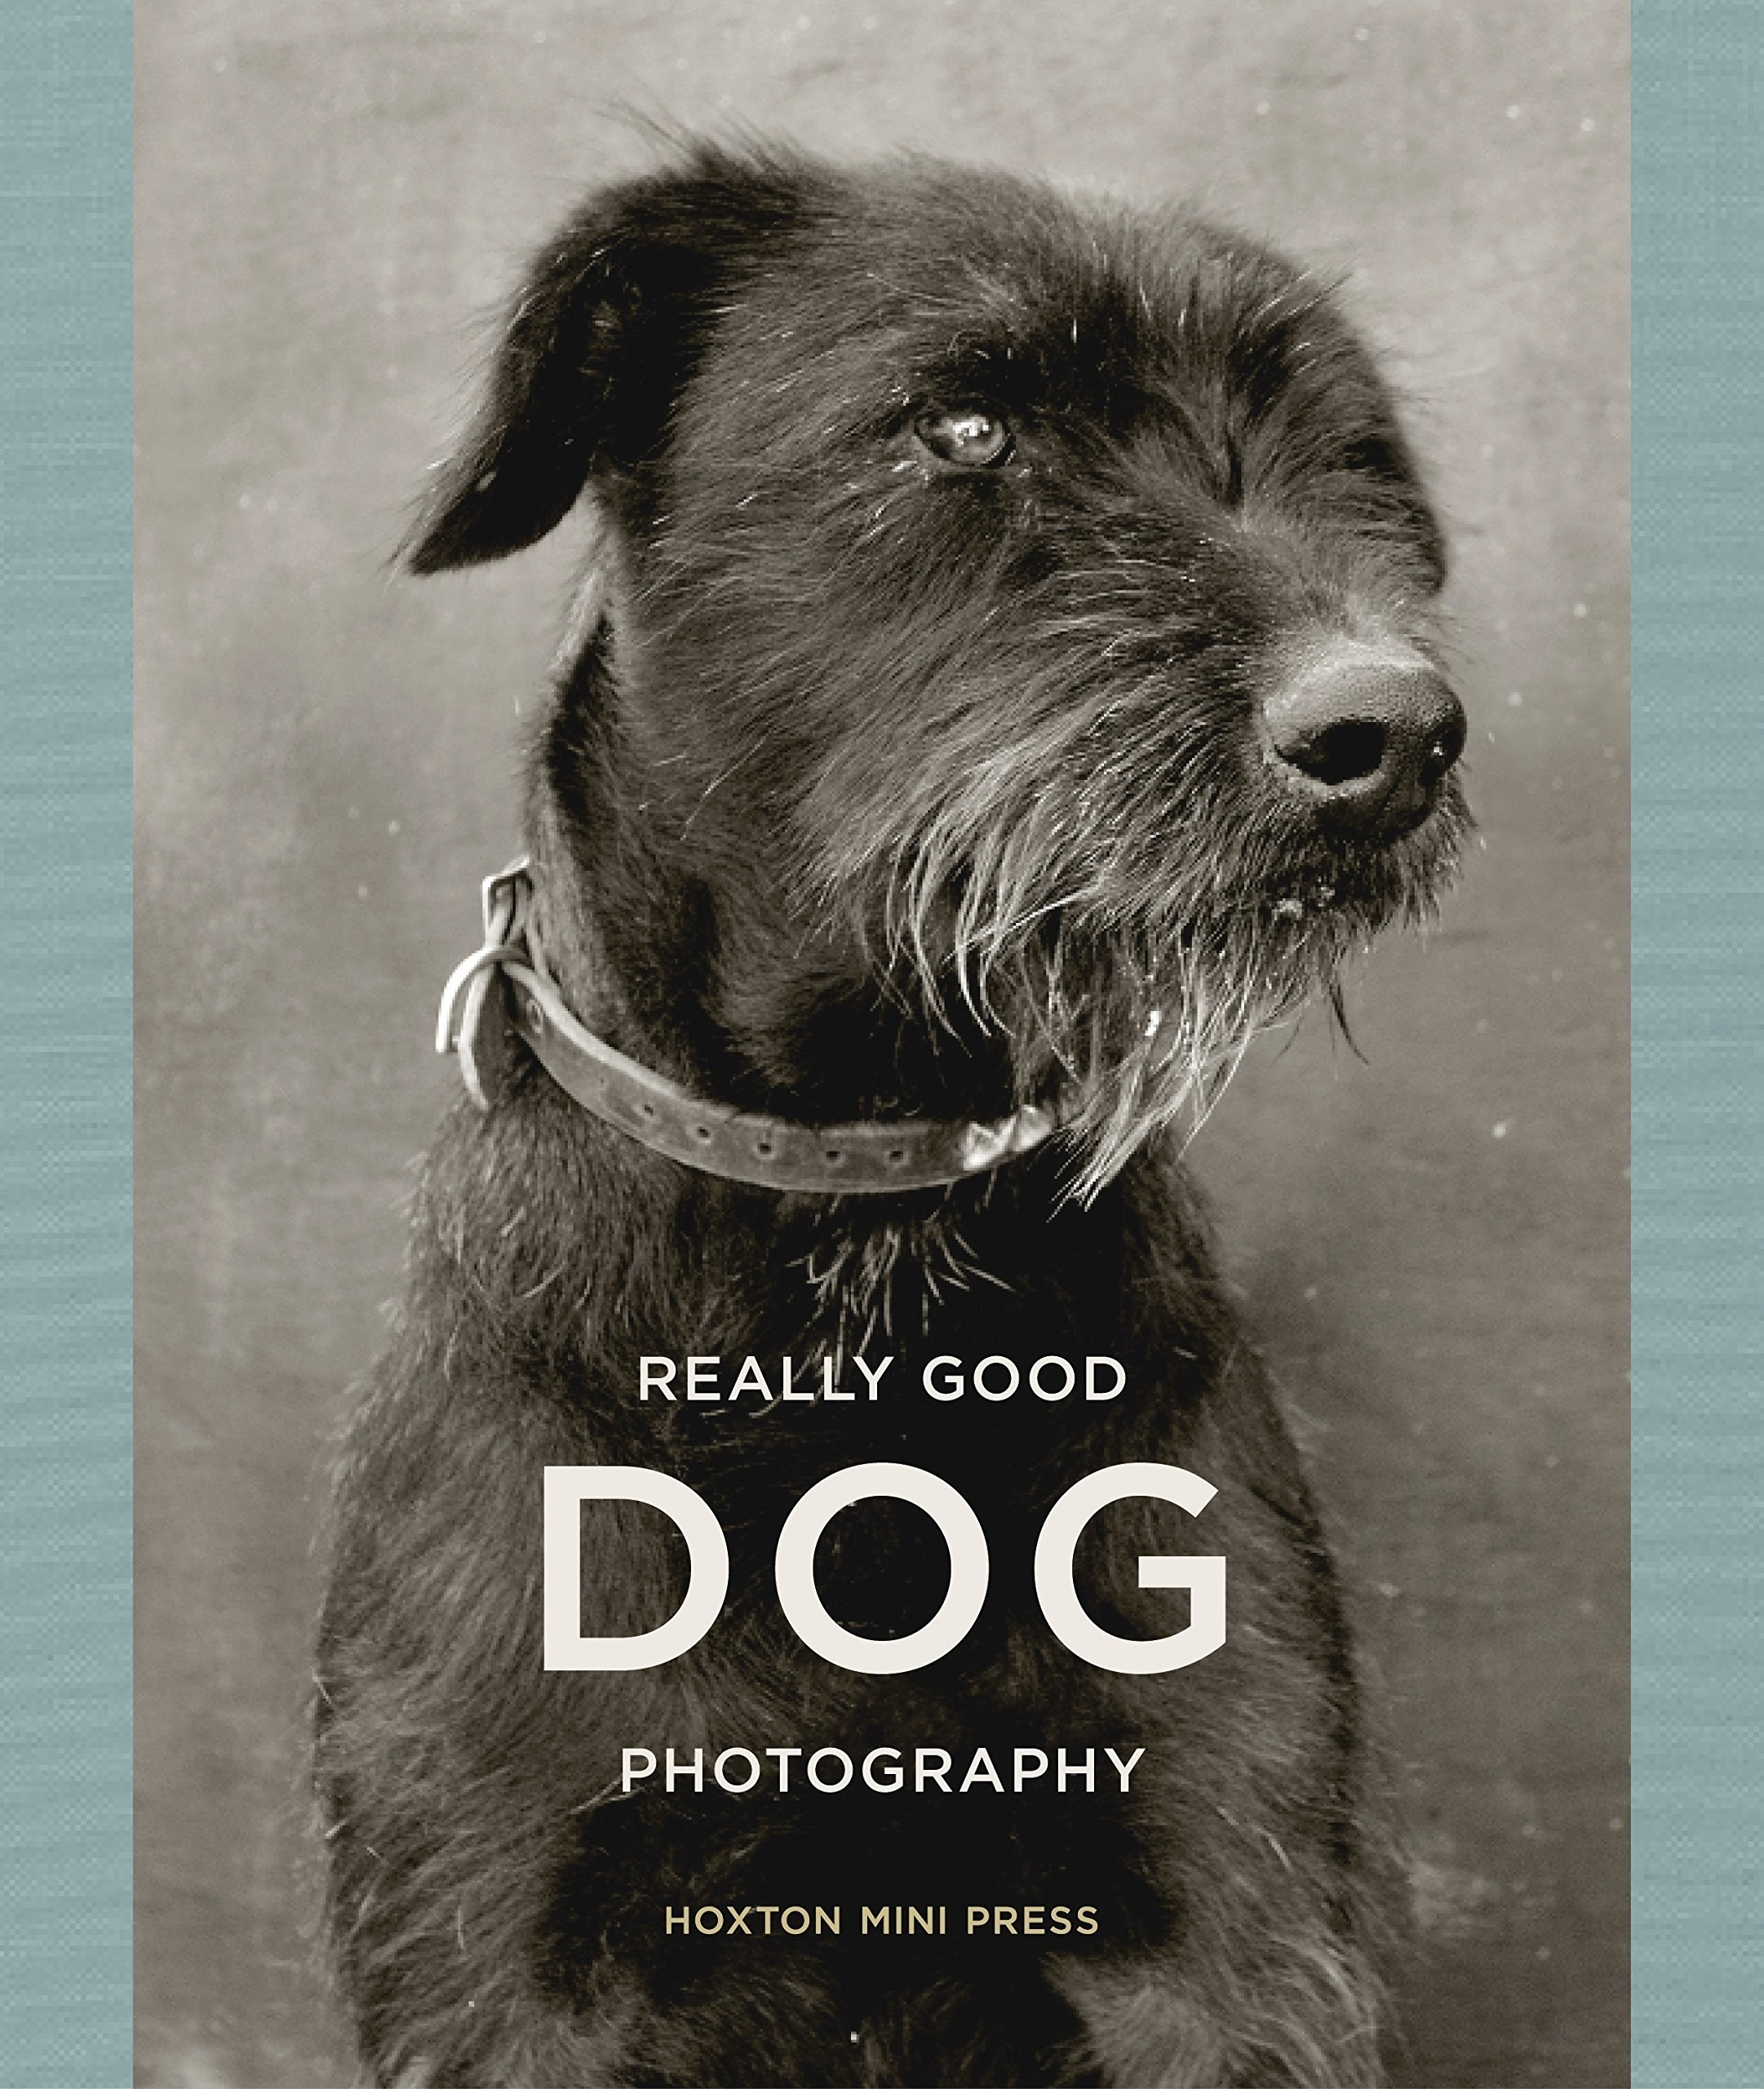 Black and white image of scruffy dog on book cover